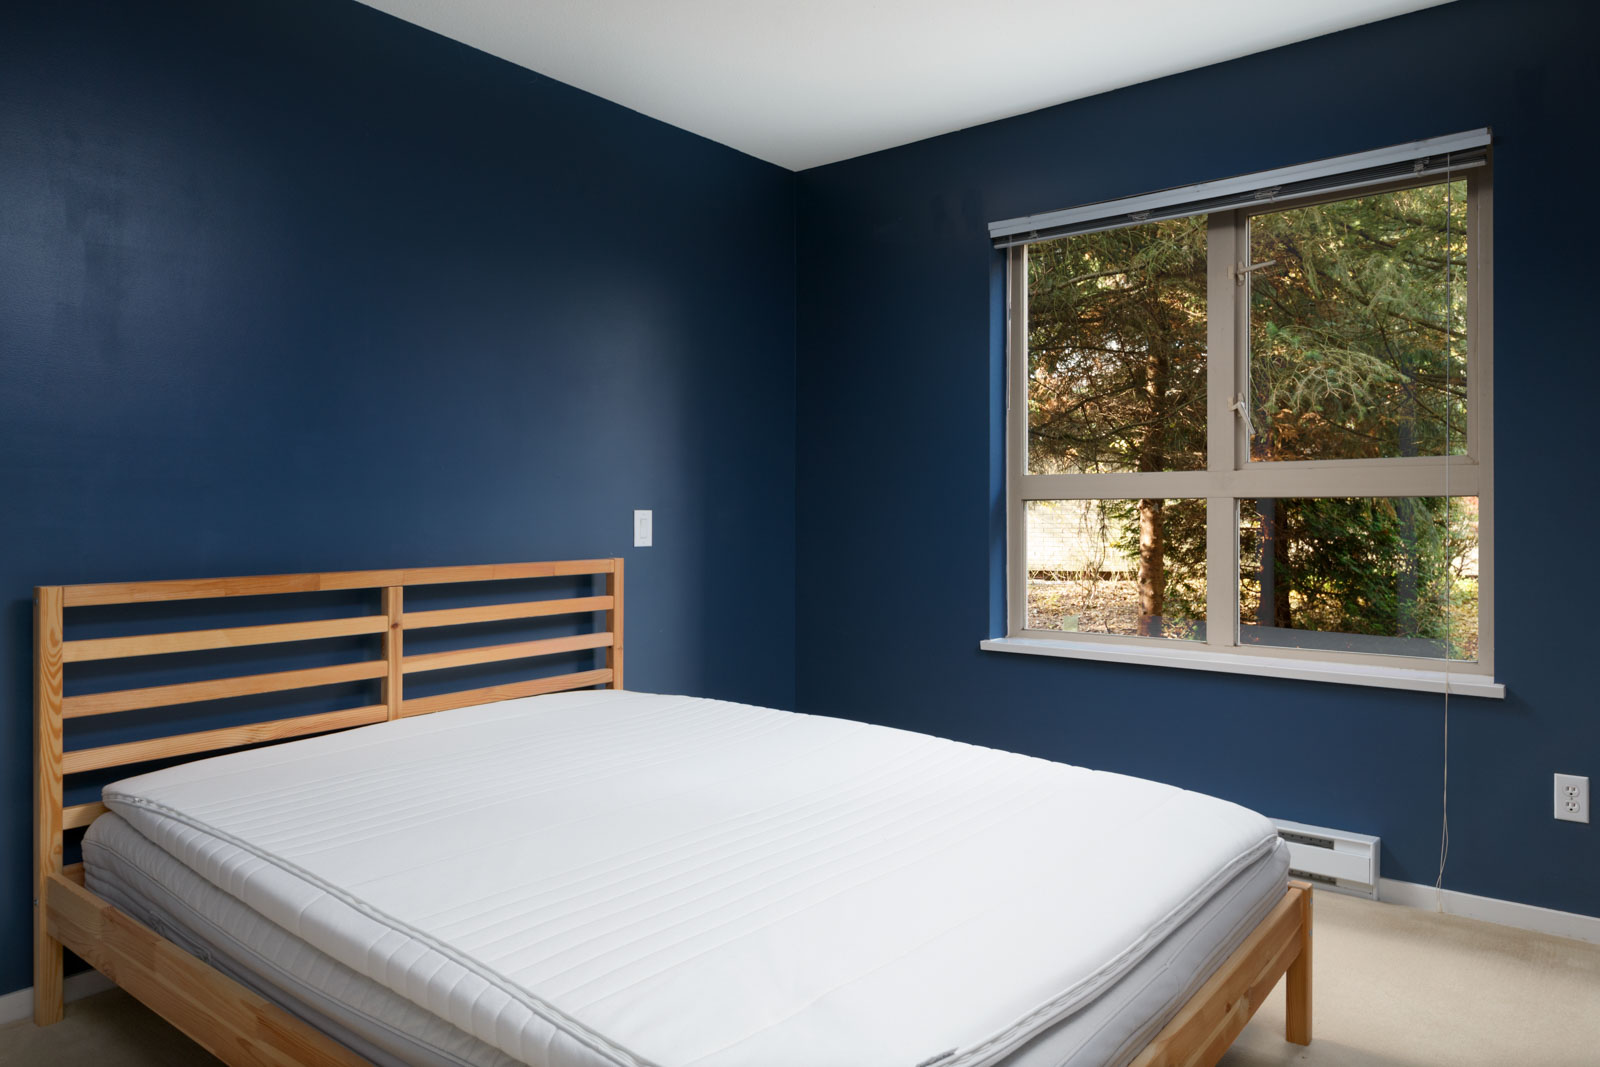 bedroom with white bed mattress and blue walls with one window